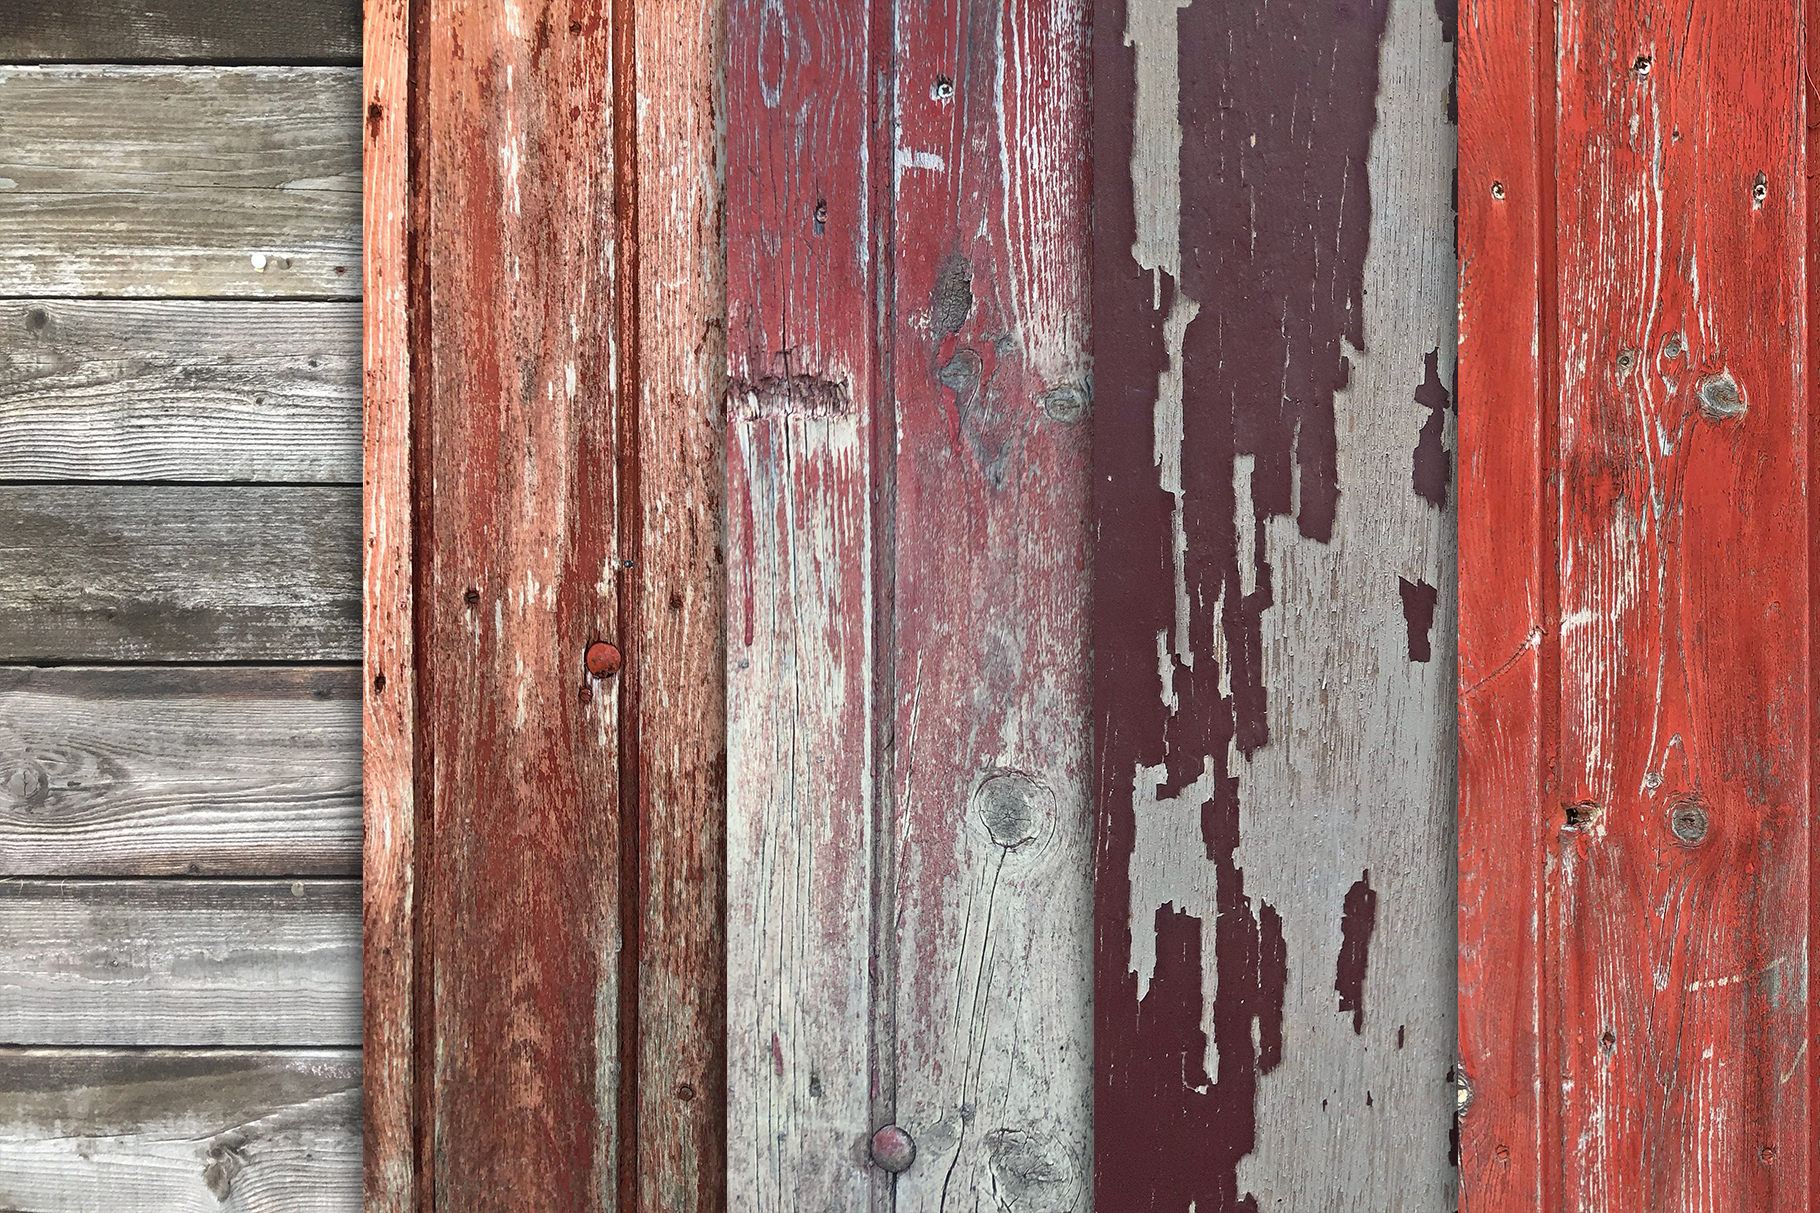 Old Wood Textures x10 example image 5